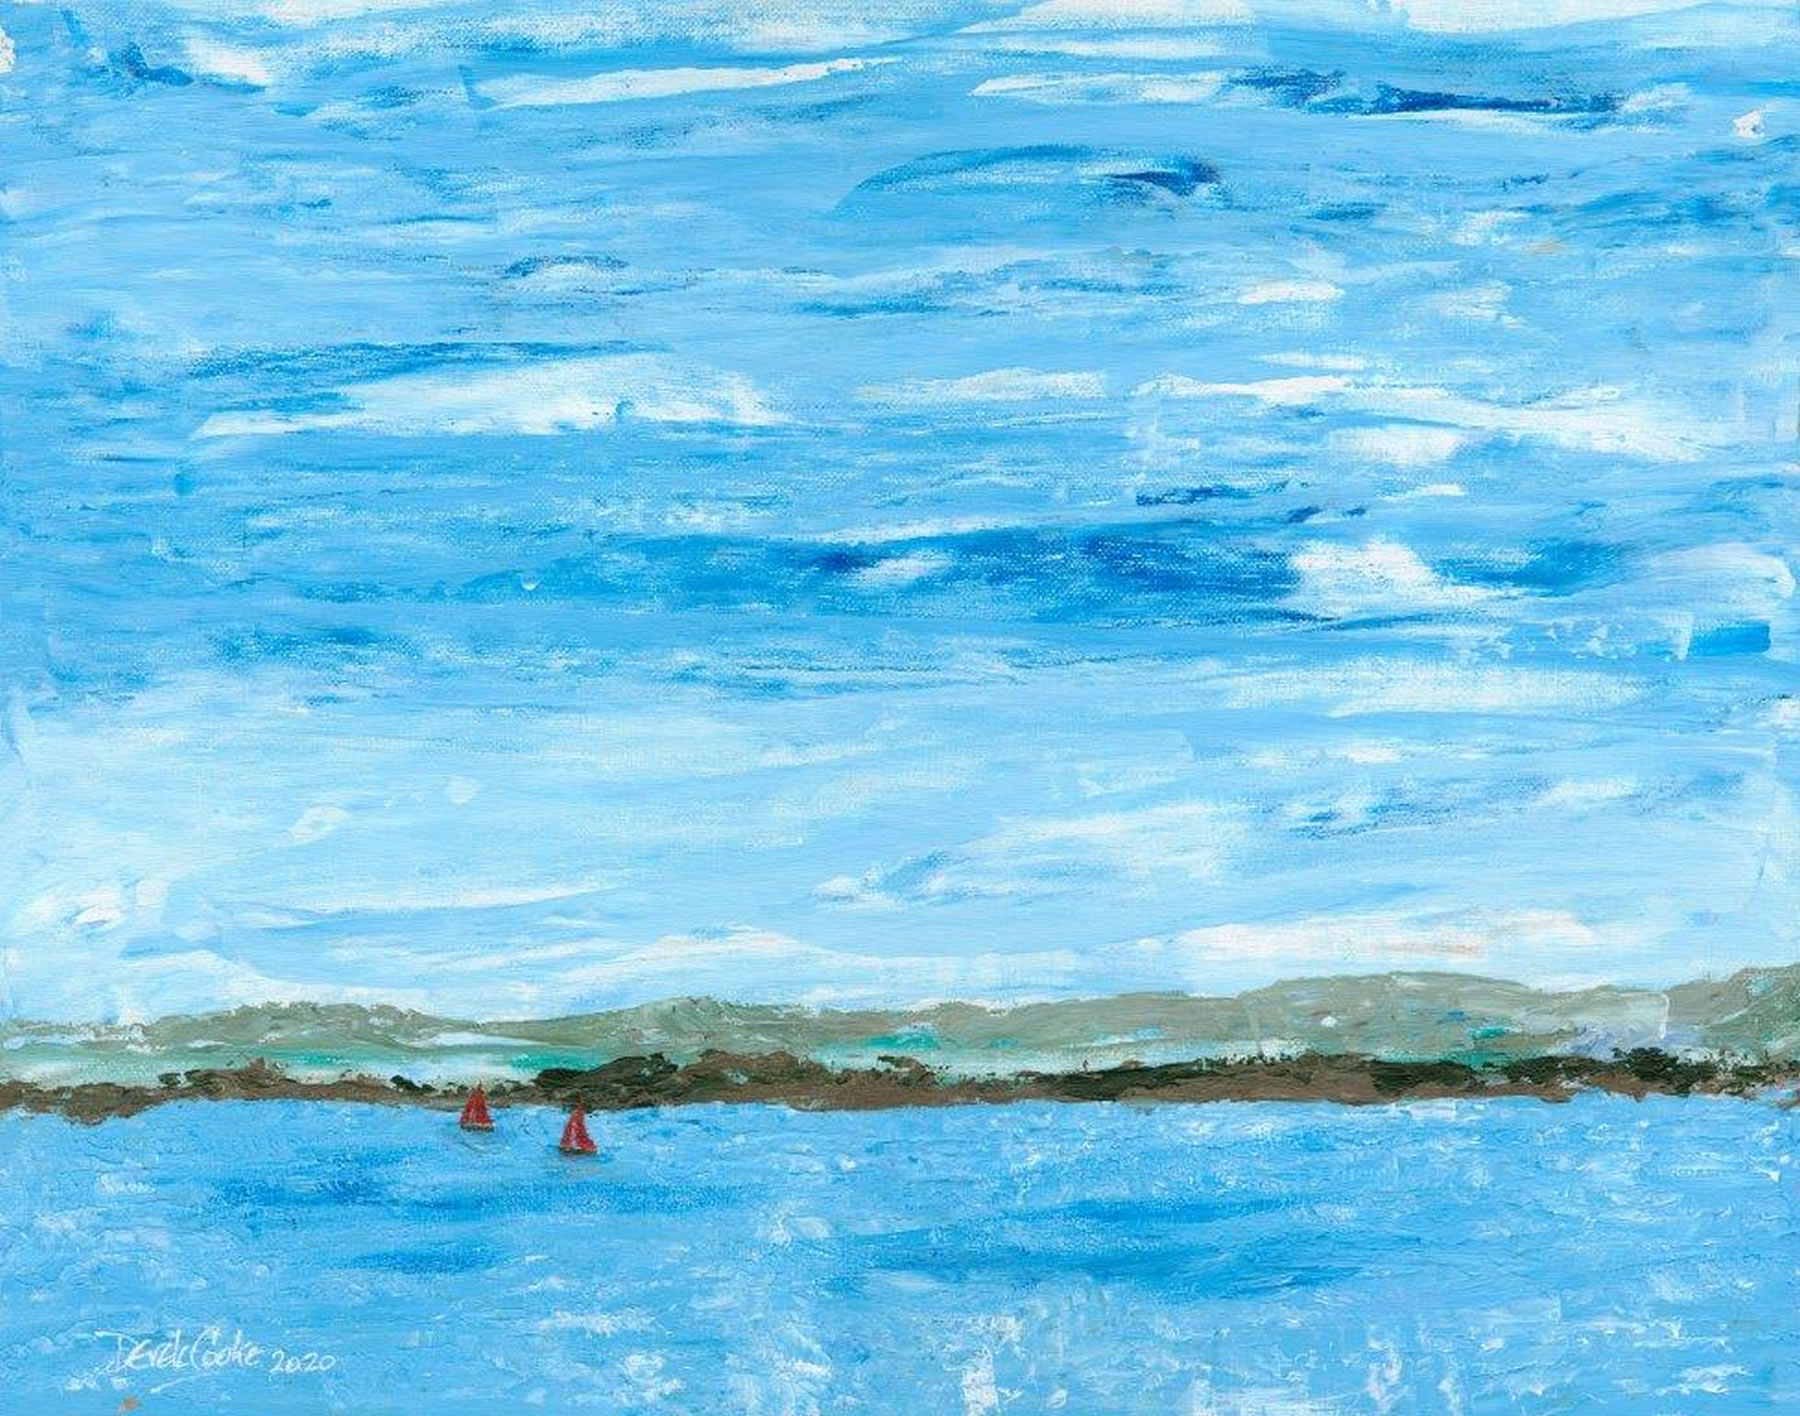 Art Prints - South Downs from the Sea painting